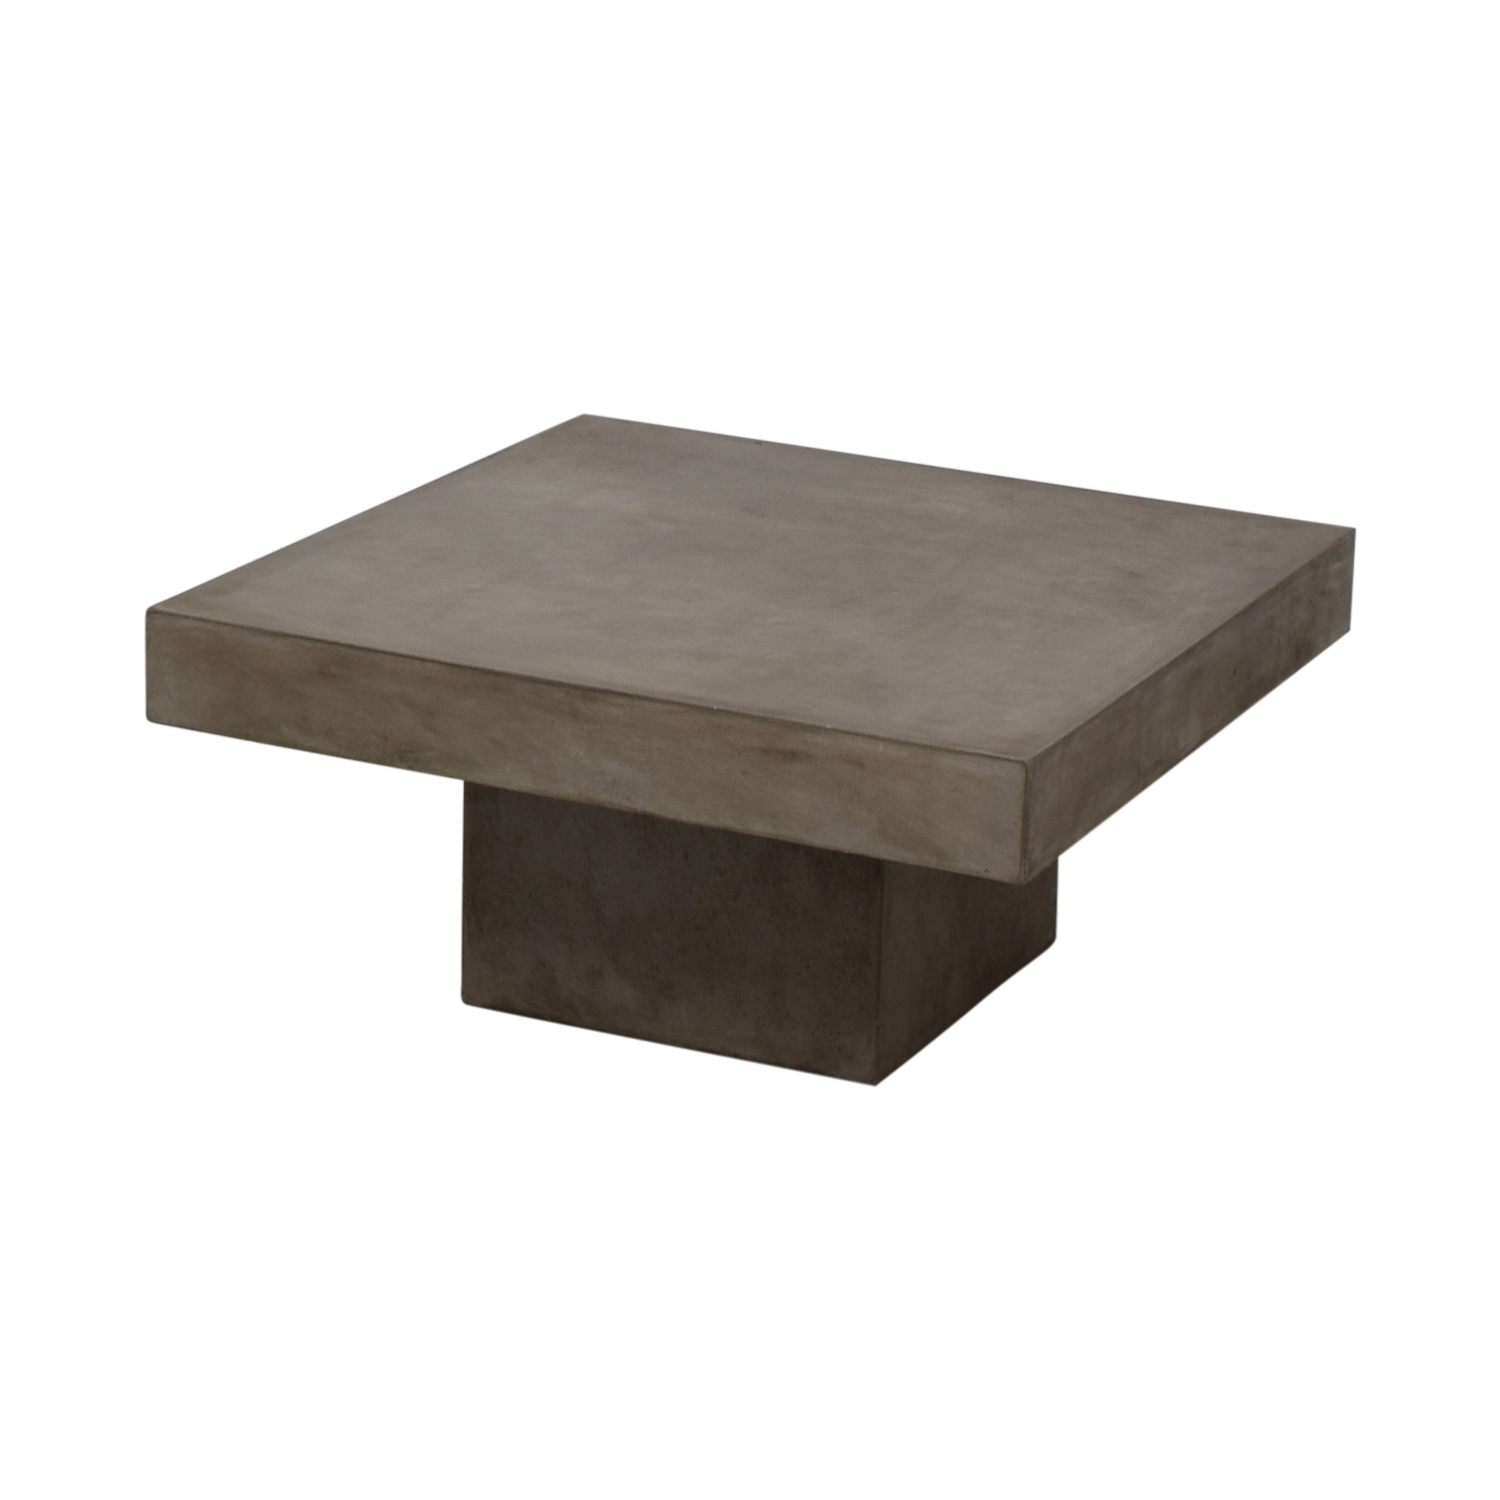 Ordinaire 65% OFF   CB2 CB2 Element Cement Coffee Table / Tables